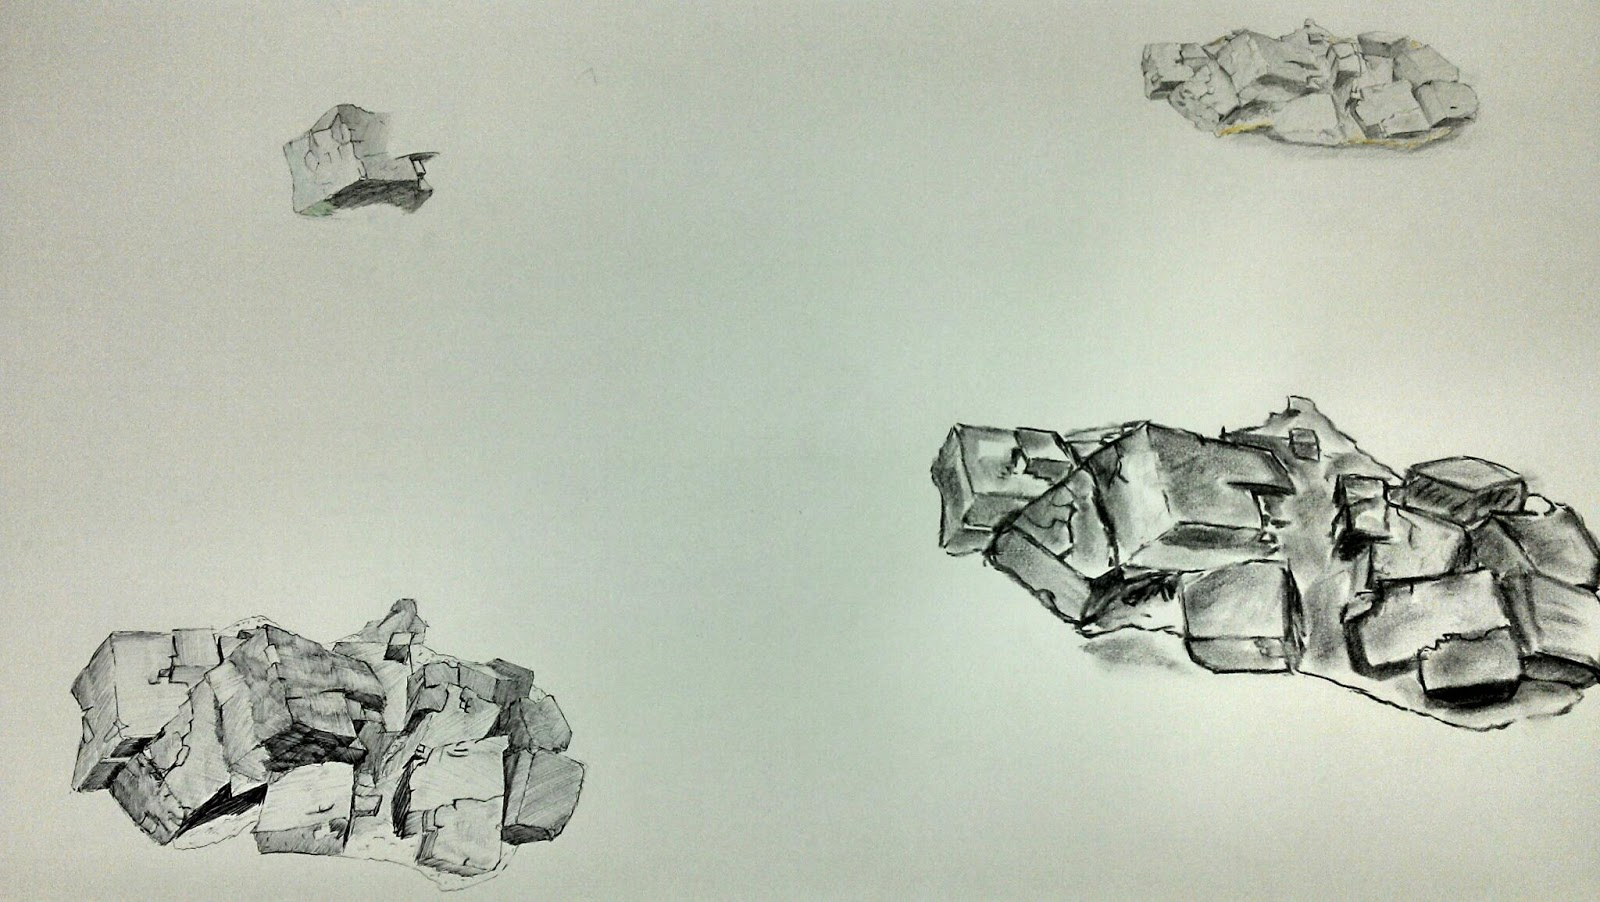 Harpo Draws Natural Forms Project Crit